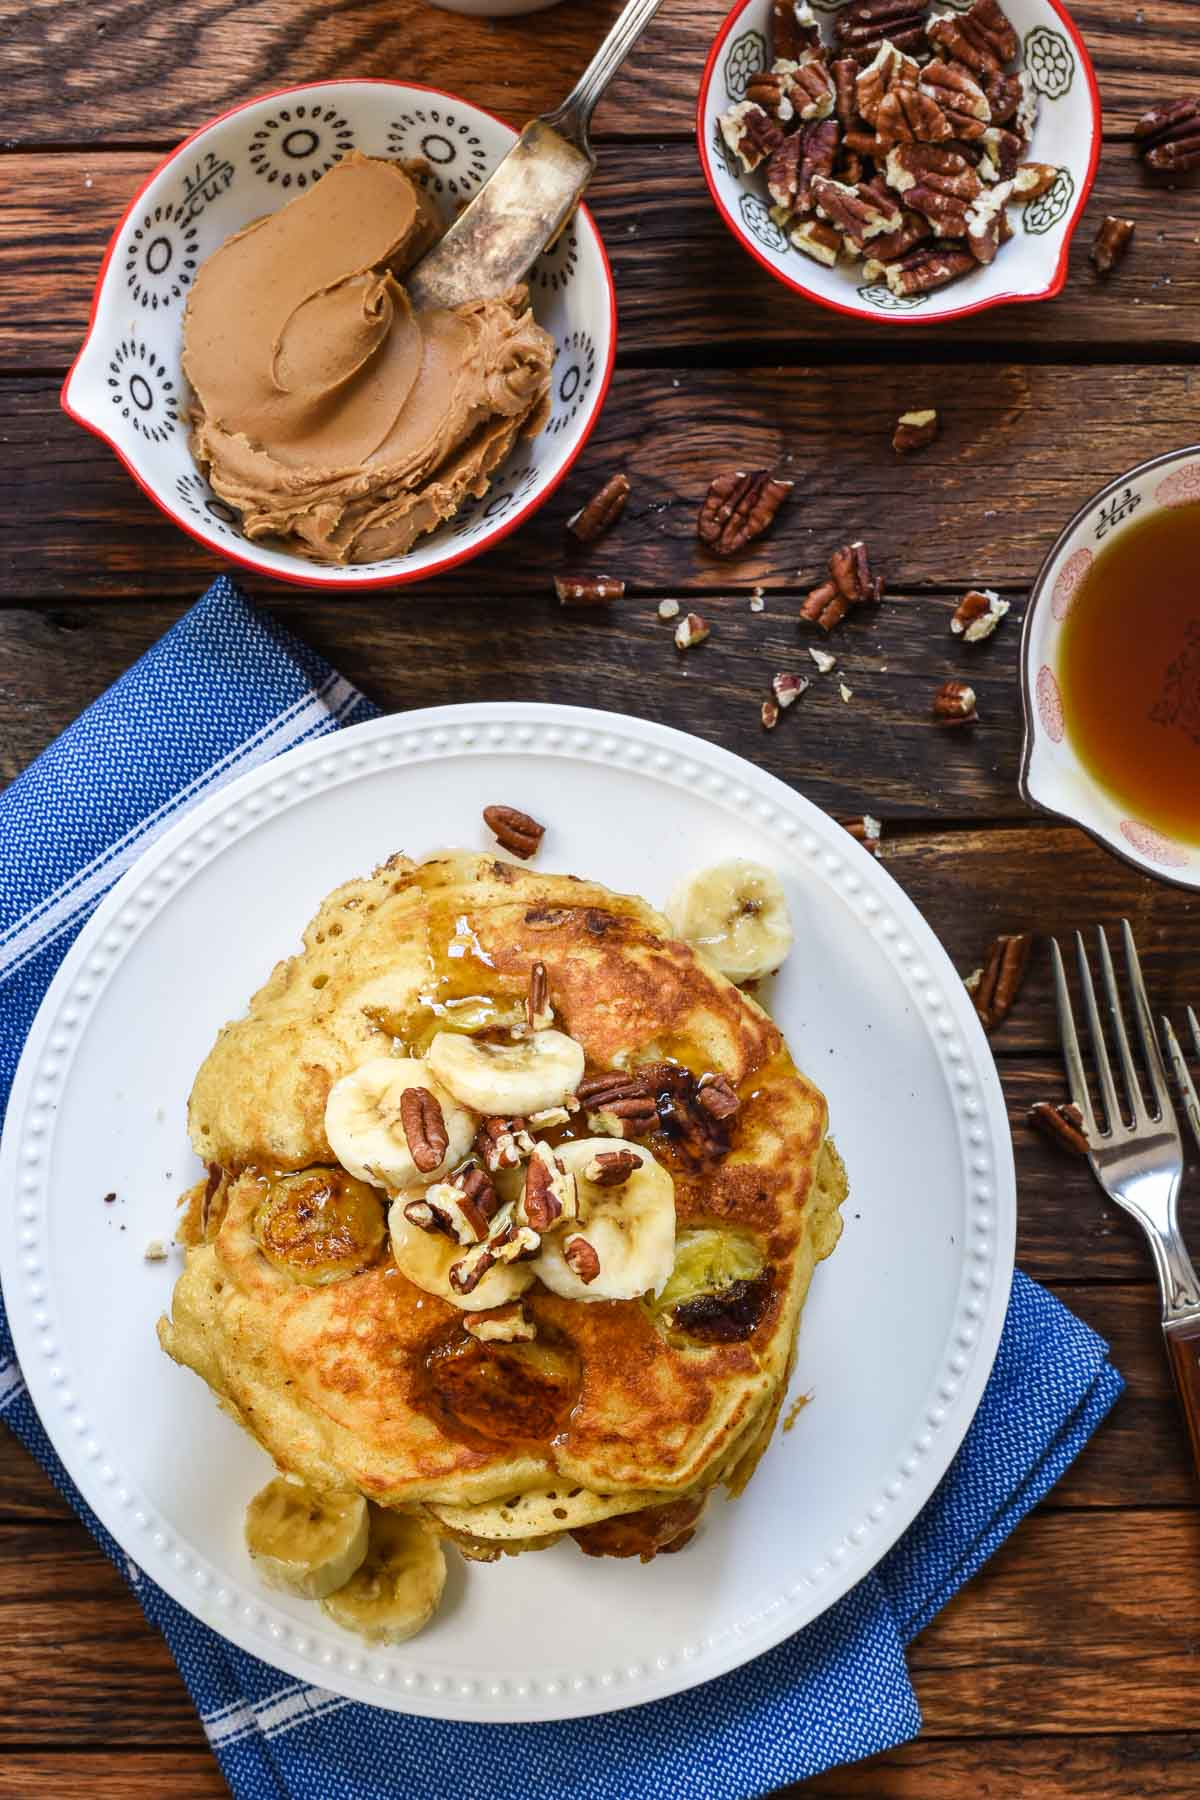 Fluffy Banana Pancakes topped with toasted pecans and biscoff spread are perfect for the holidays or any day you want to treat yourself!